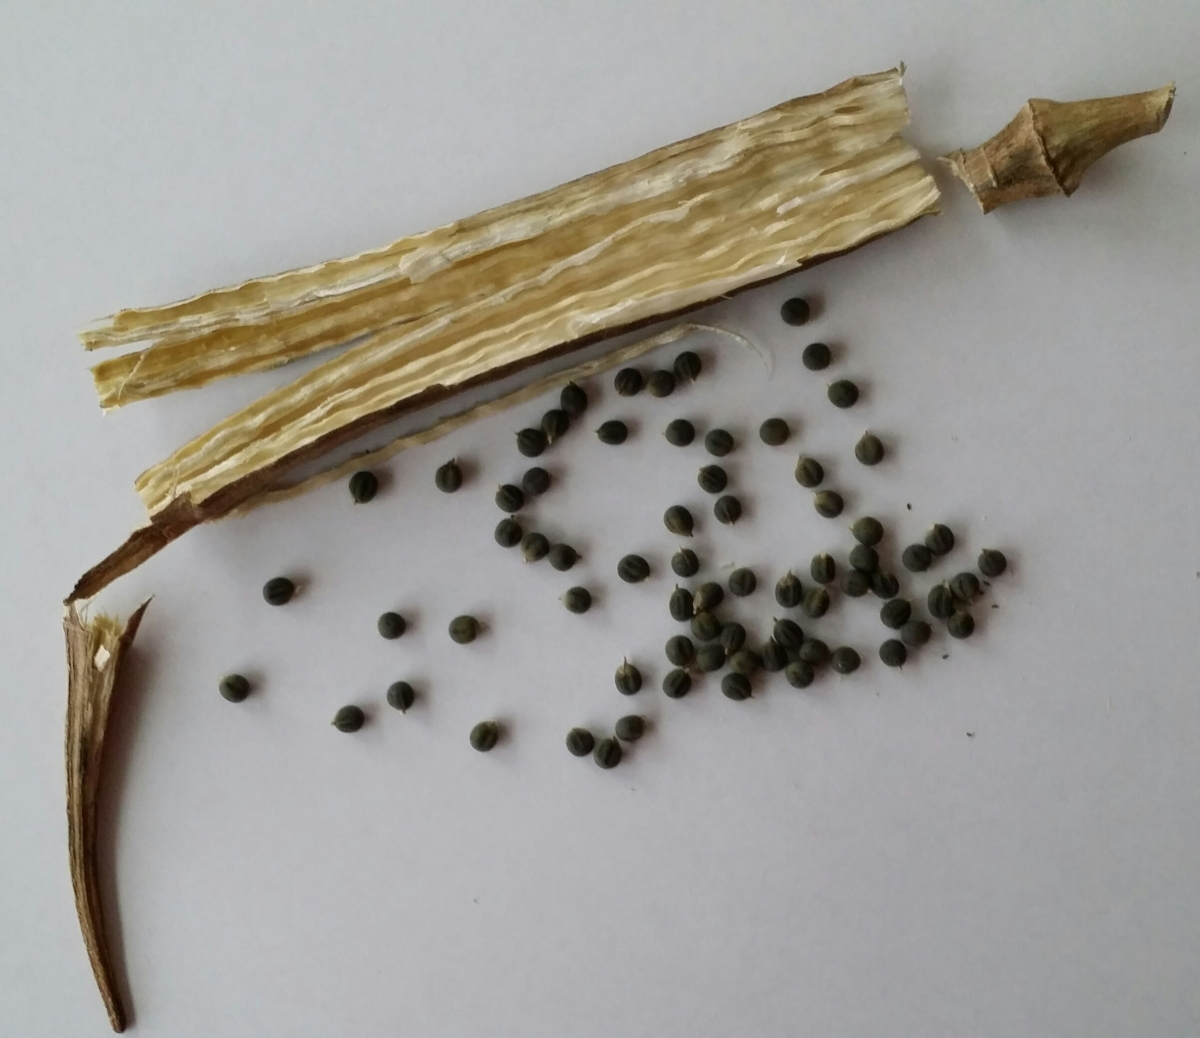 Okra Seeds Removed from Pods